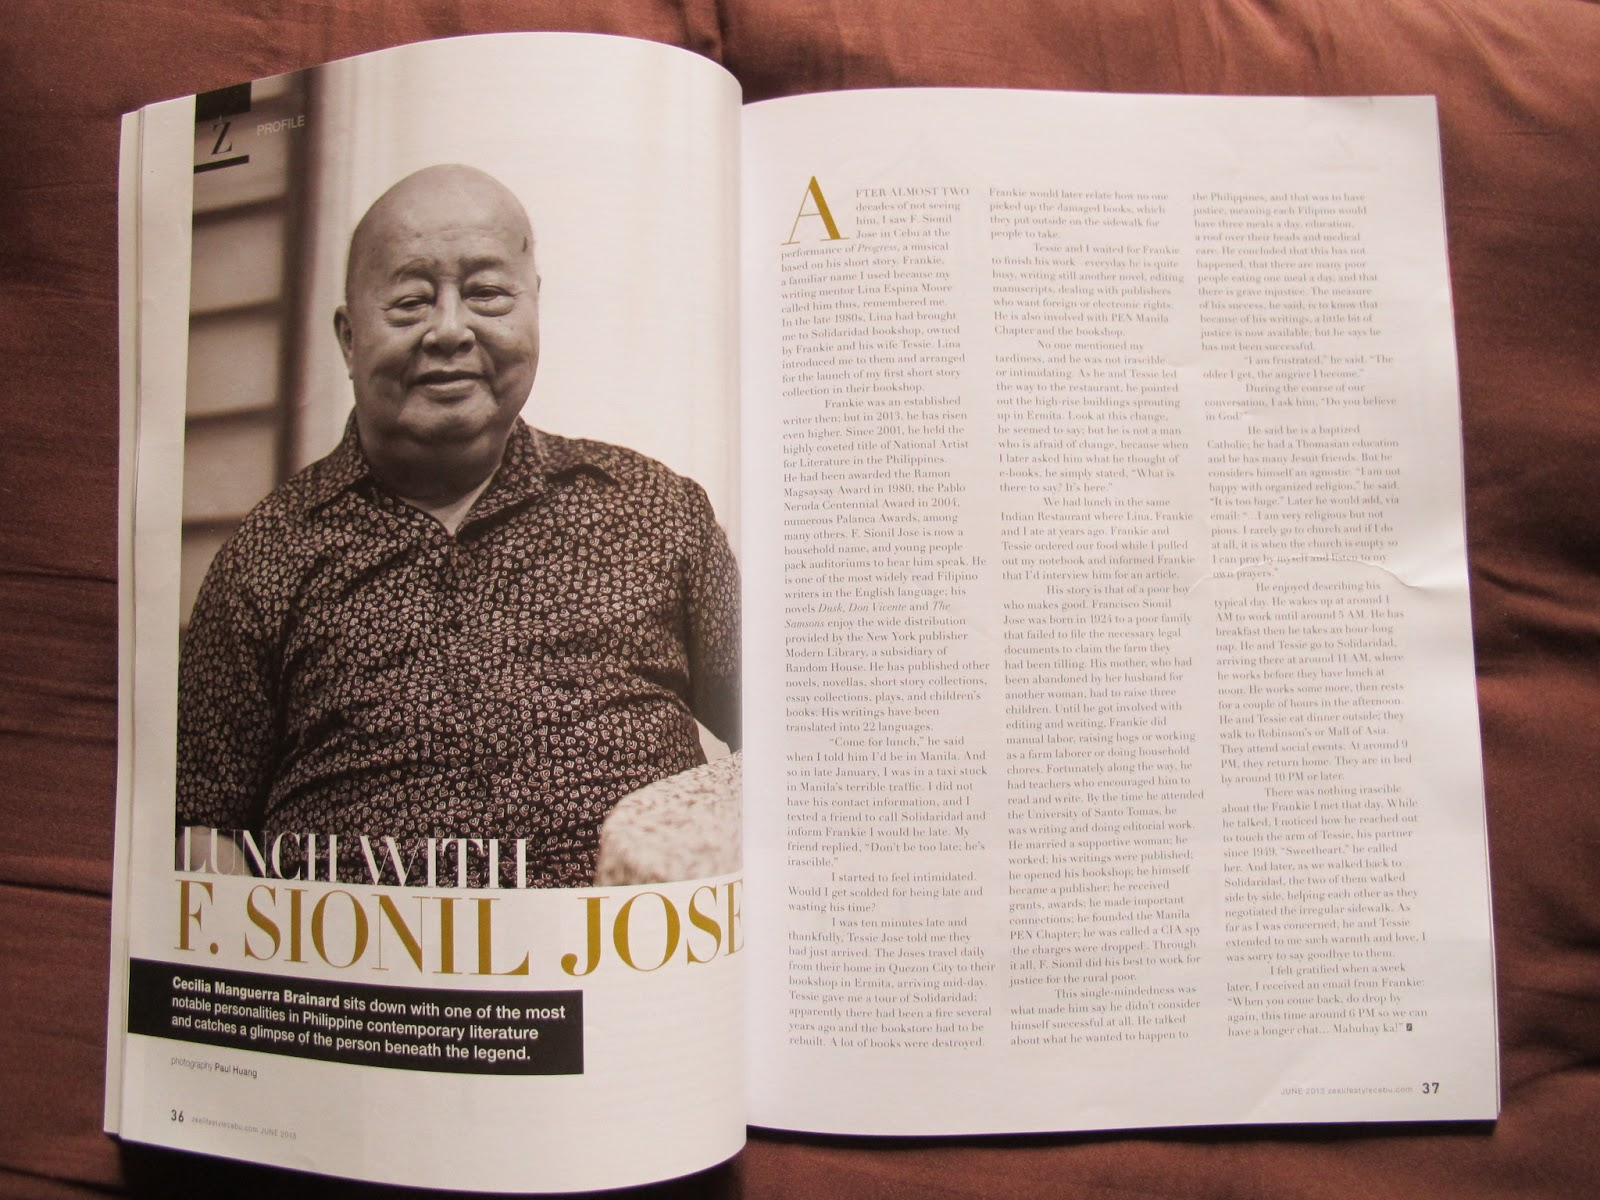 f sionil jose s works Discover f sionil jose biography, works, awards, books and excerpts about f sionil josé and moreunwrap a complete list of books by f sionil jose and find books available for swap.